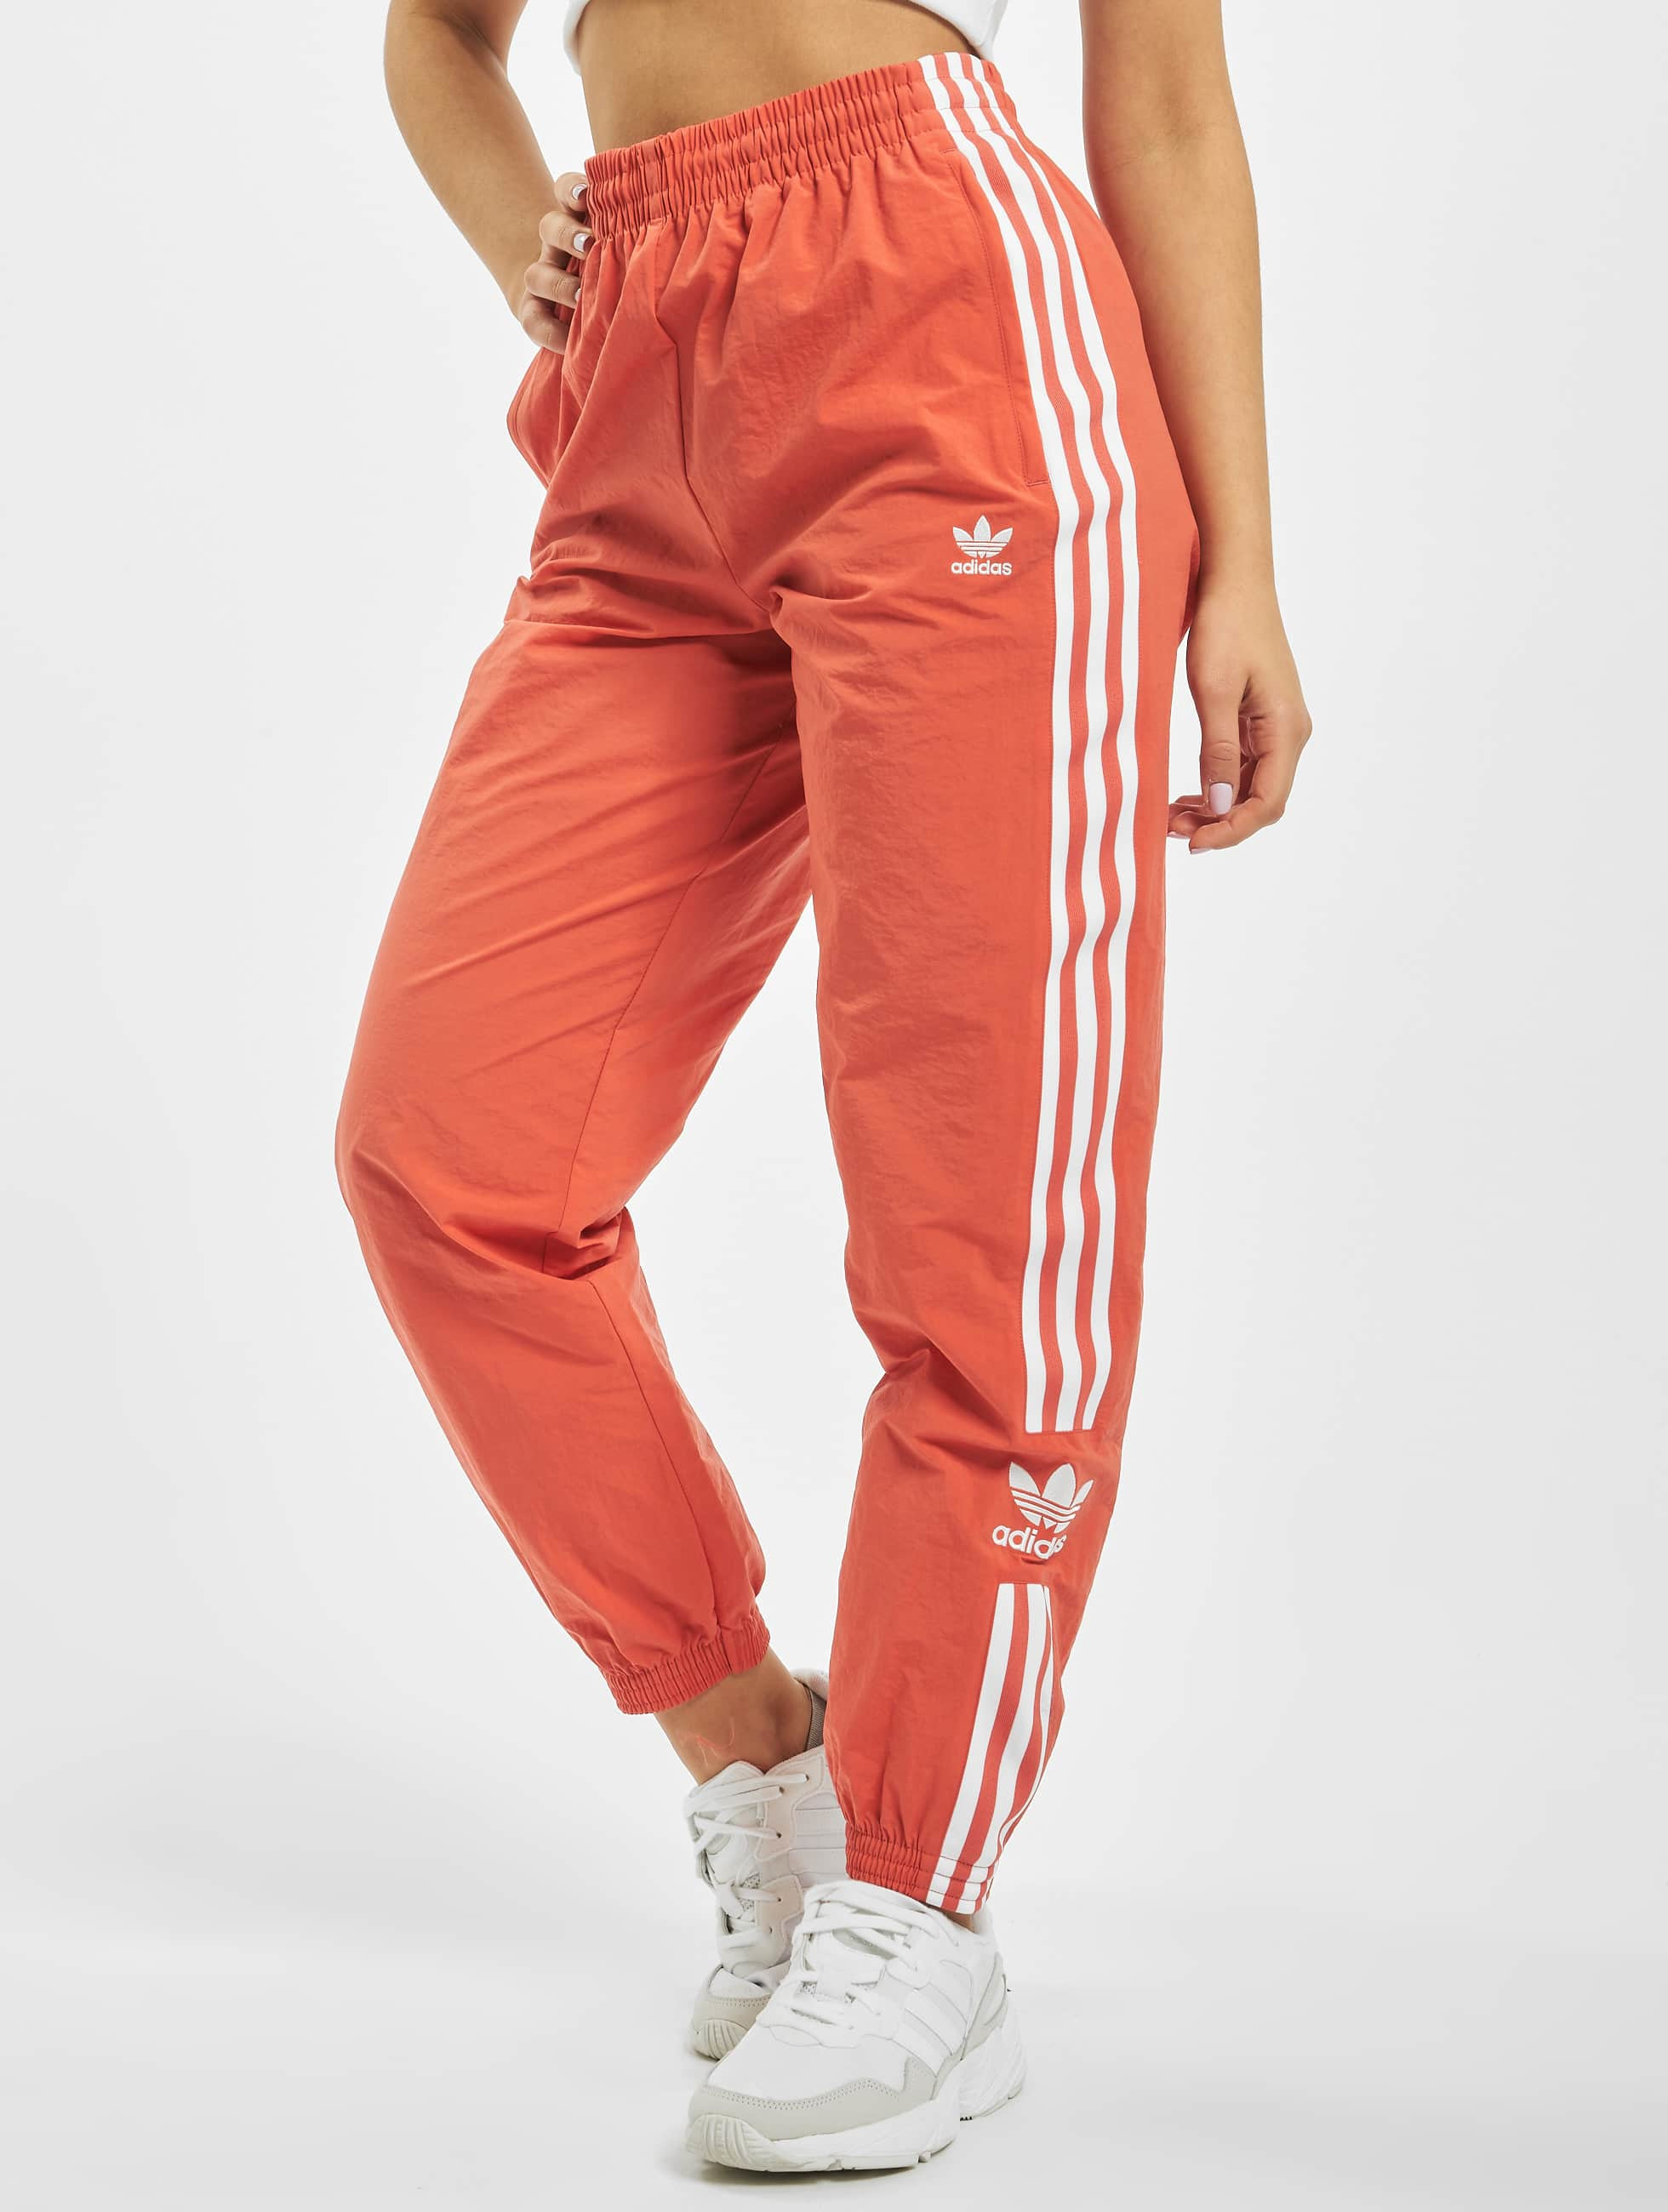 ensemble adidas orange femme